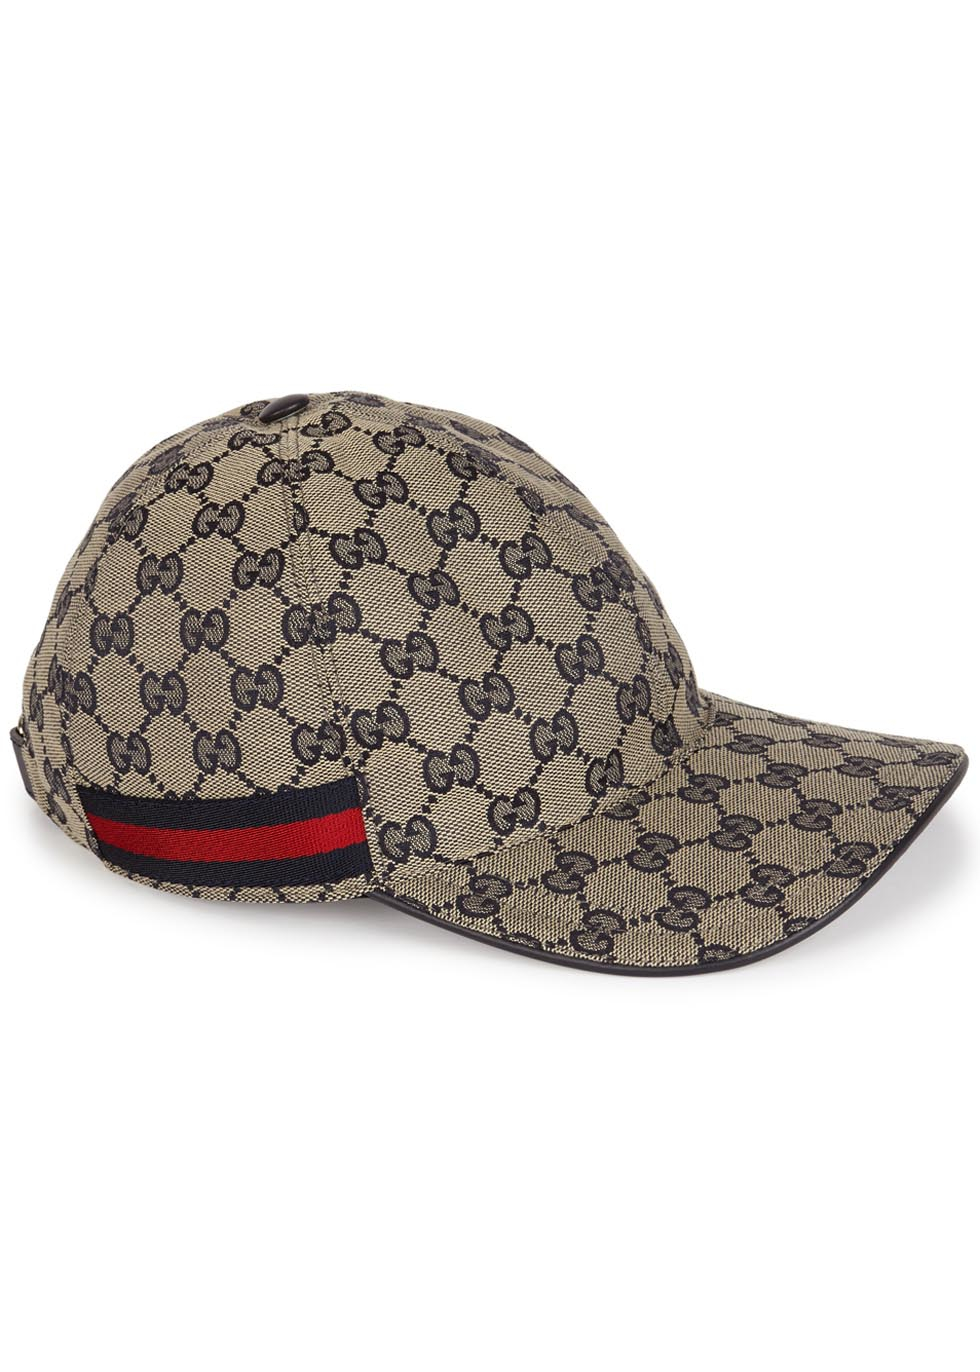 2d62281c2b3 Gucci Gg Sand Monogrammed Canvas Cap in Blue - Lyst